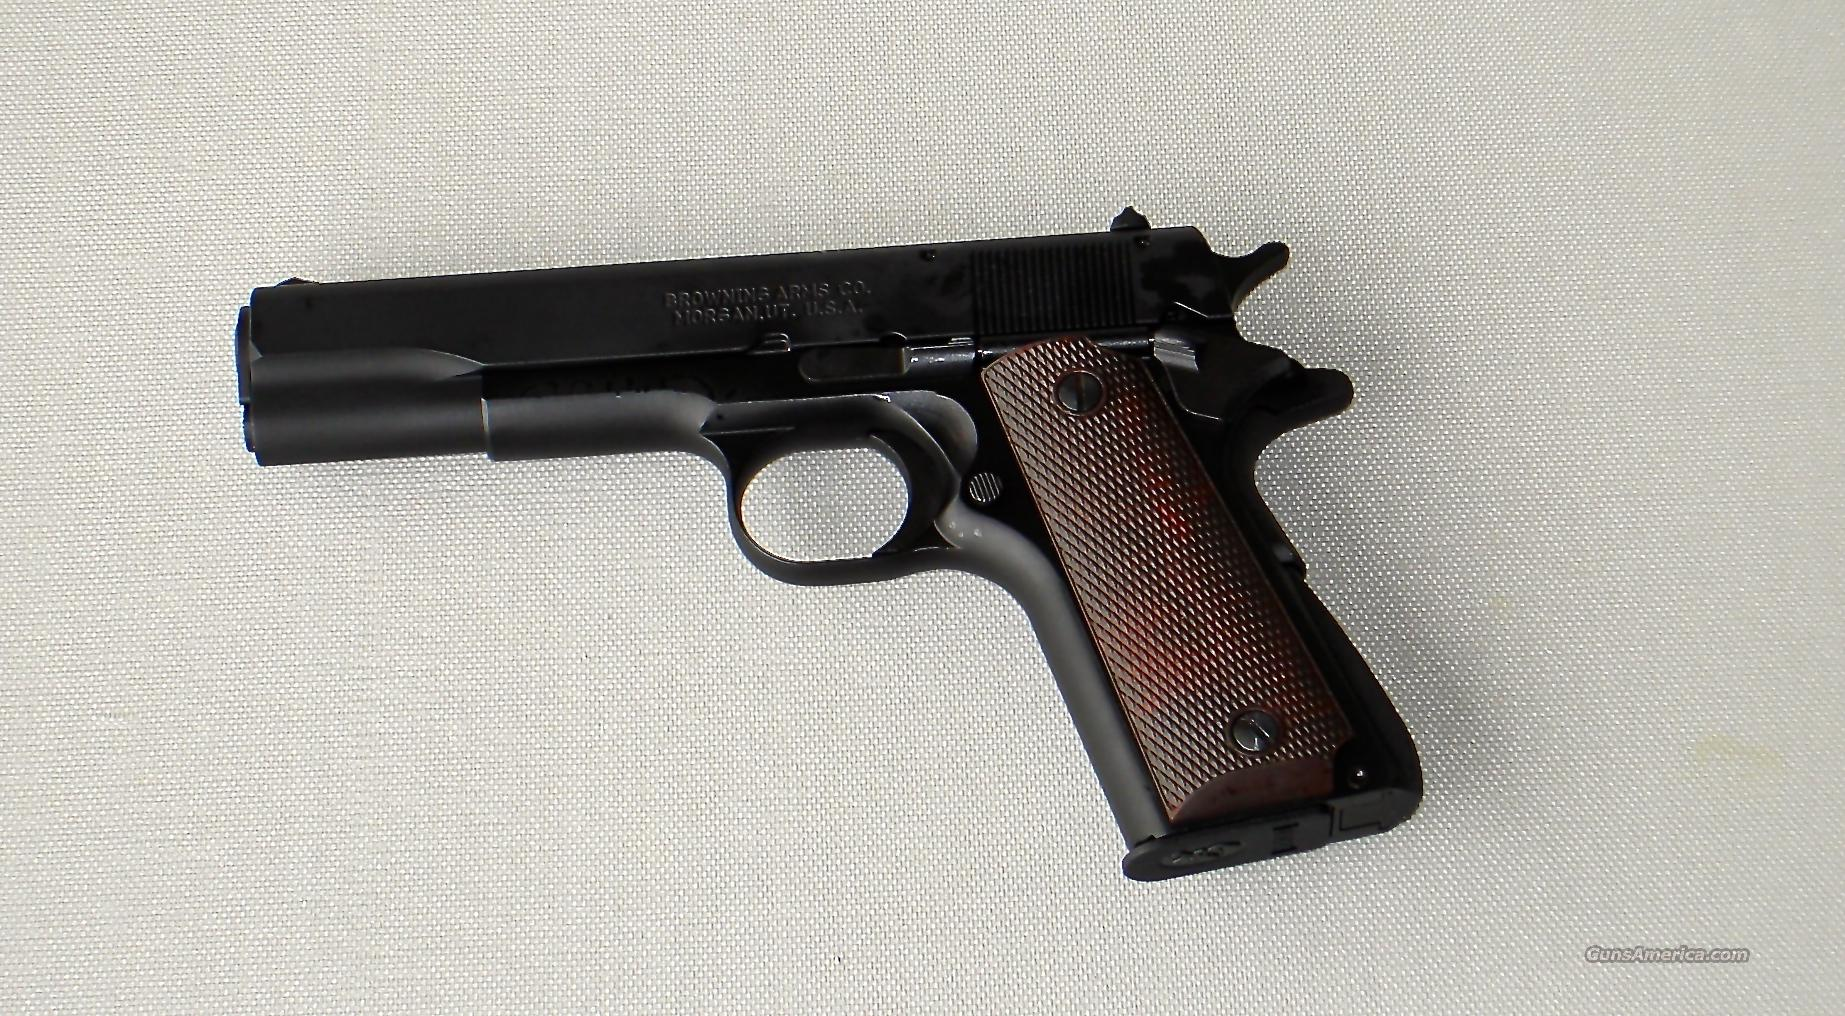 Browning 1911-22 Compact  3.625 in Barrel 22 LR  Guns > Pistols > Browning Pistols > Other Autos